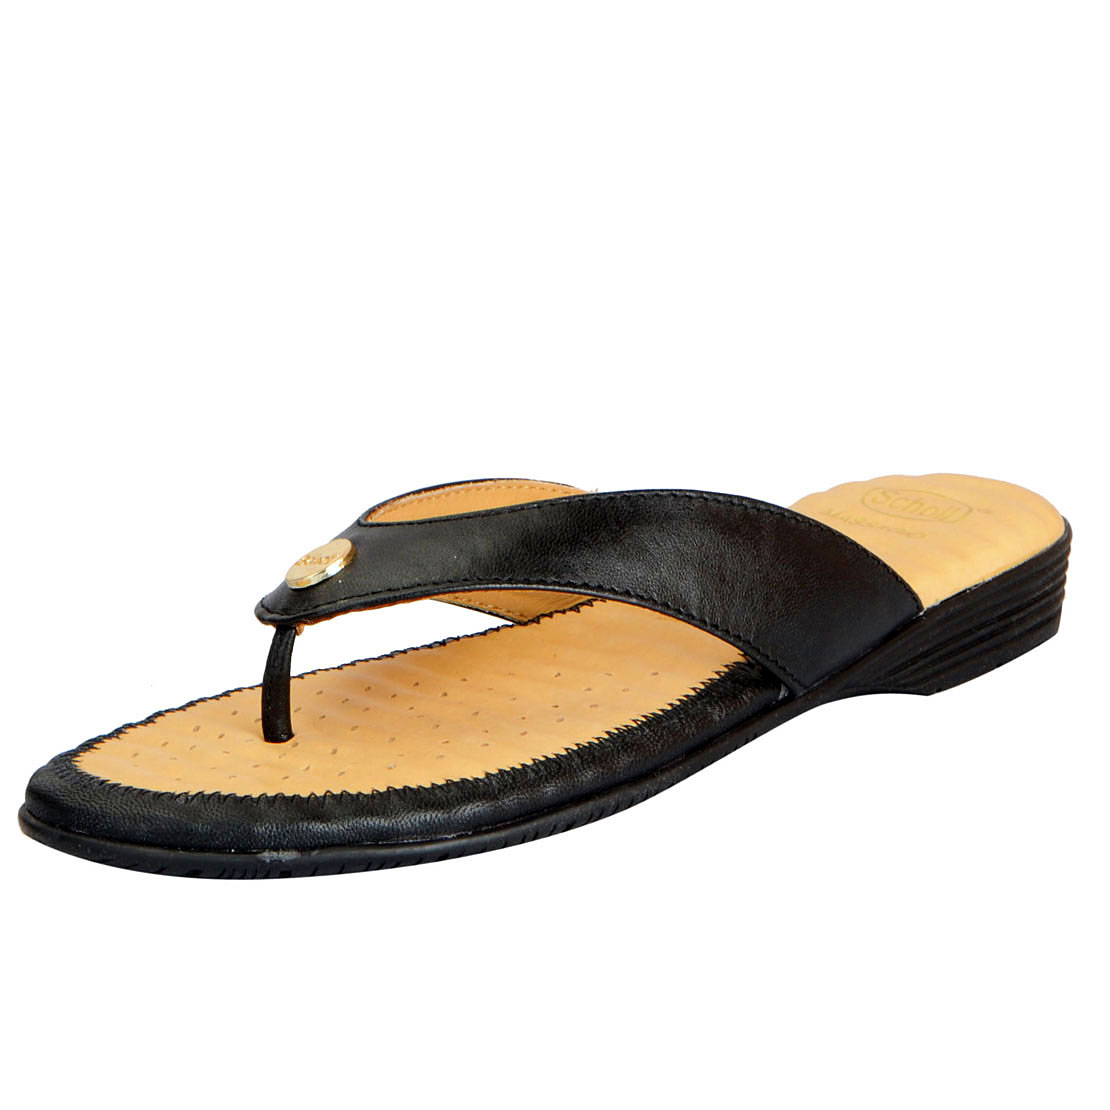 Dr.Scholls Women\'s Black Leather House and Daily Wear Flat Slippers